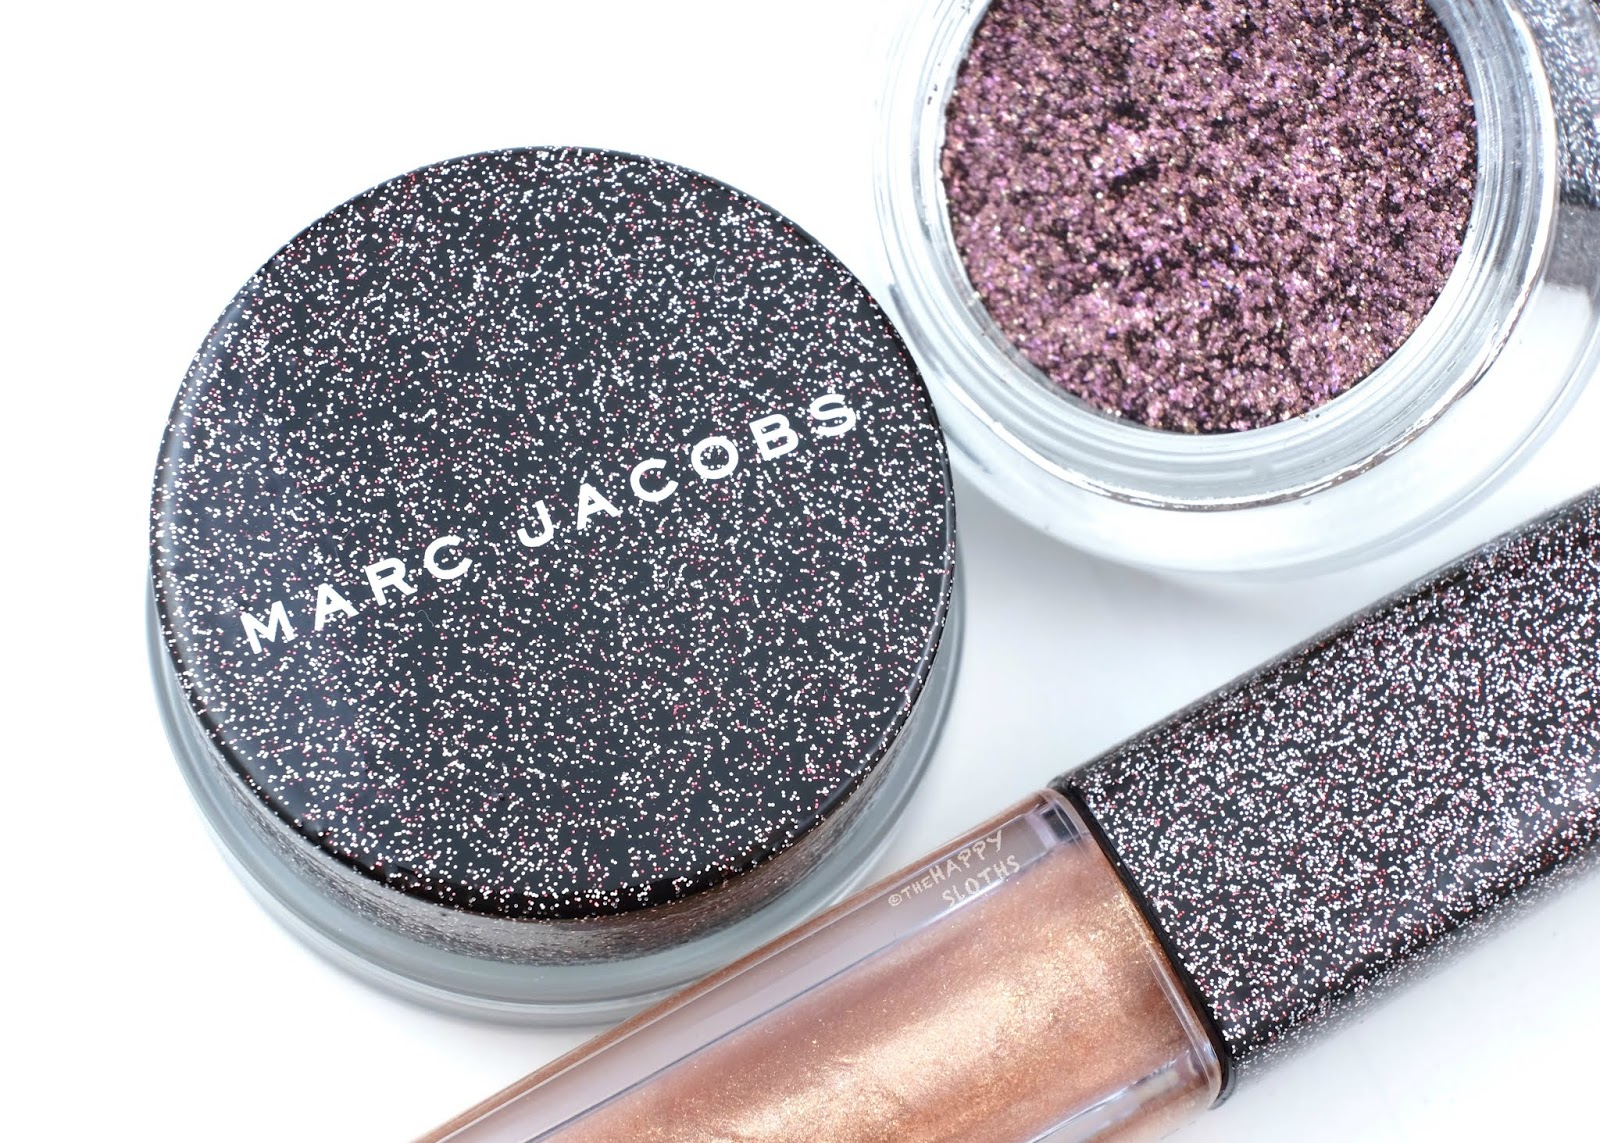 Marc Jacobs Beauty | Holiday 2019 Lust & Stardust Collection: Review and Swatches